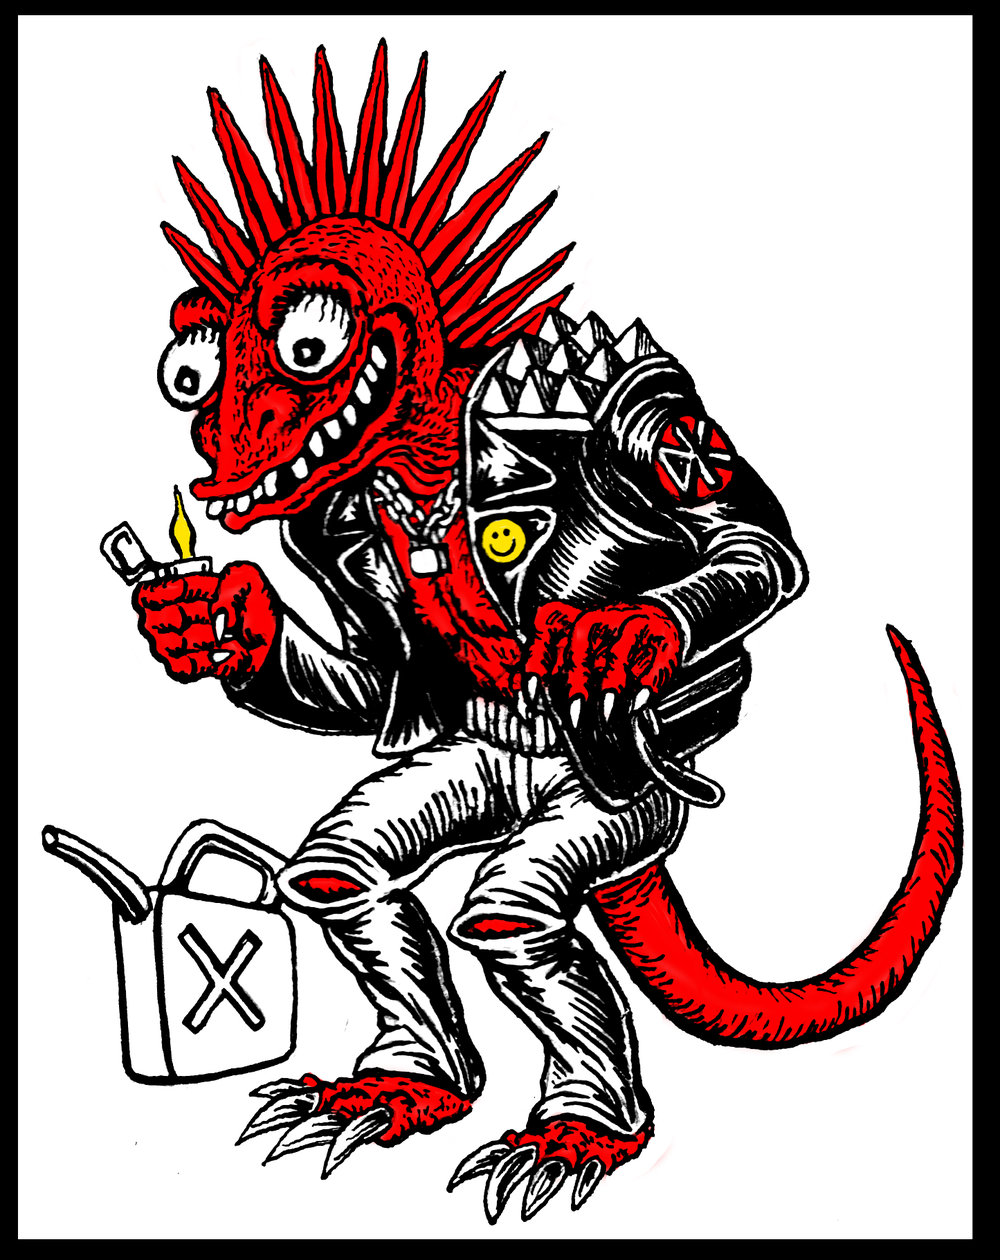 Lizard Punk  2013 ink and digital